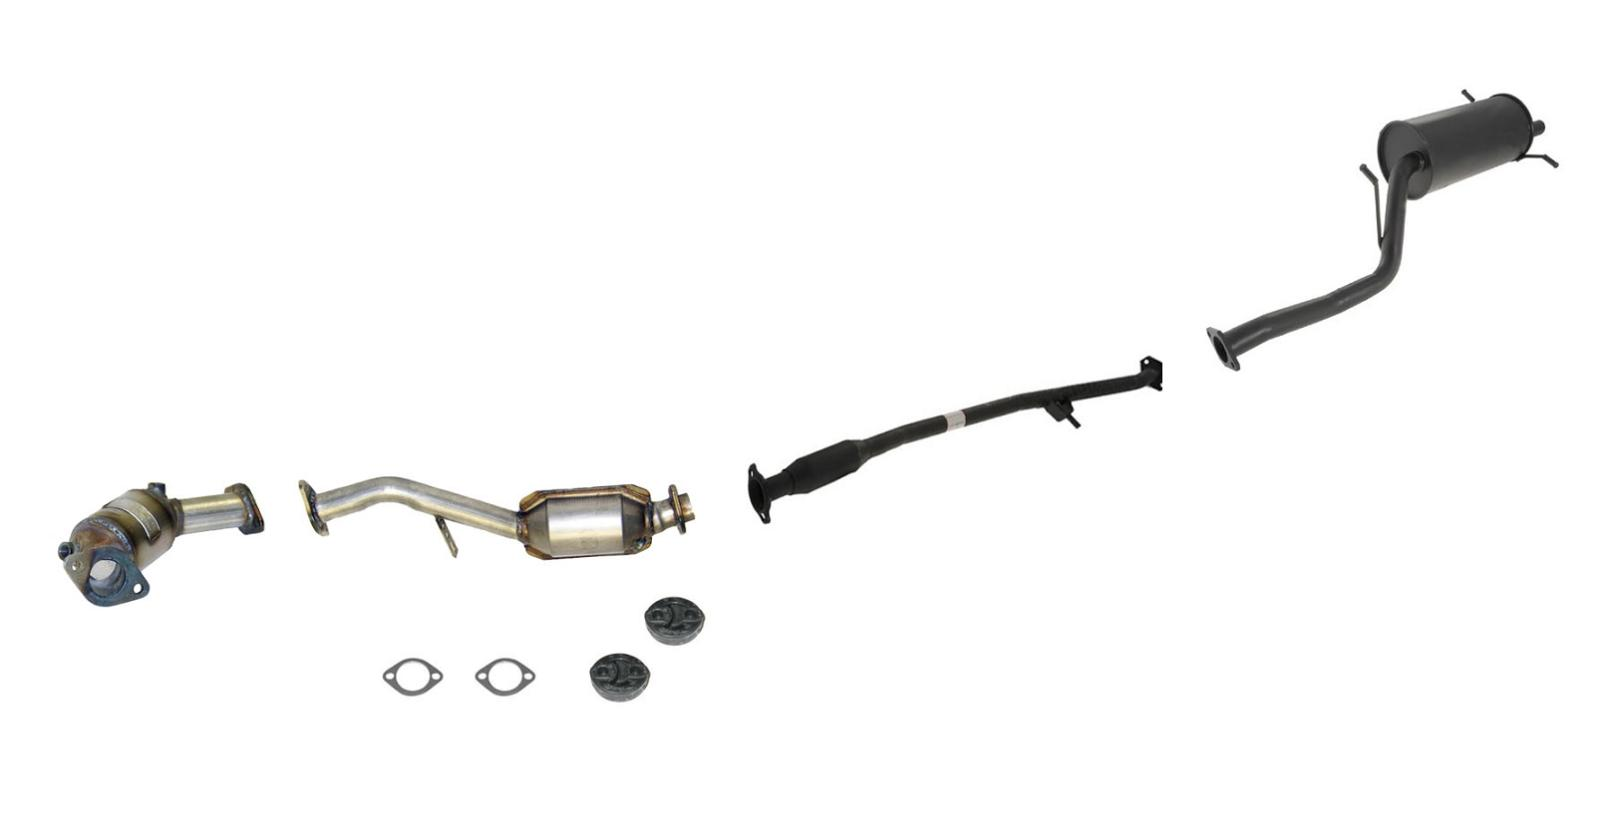 1999 Subaru Legacy Exhaust System Best 2018 Diagram 2001 A6 Exle Electrical Wiring